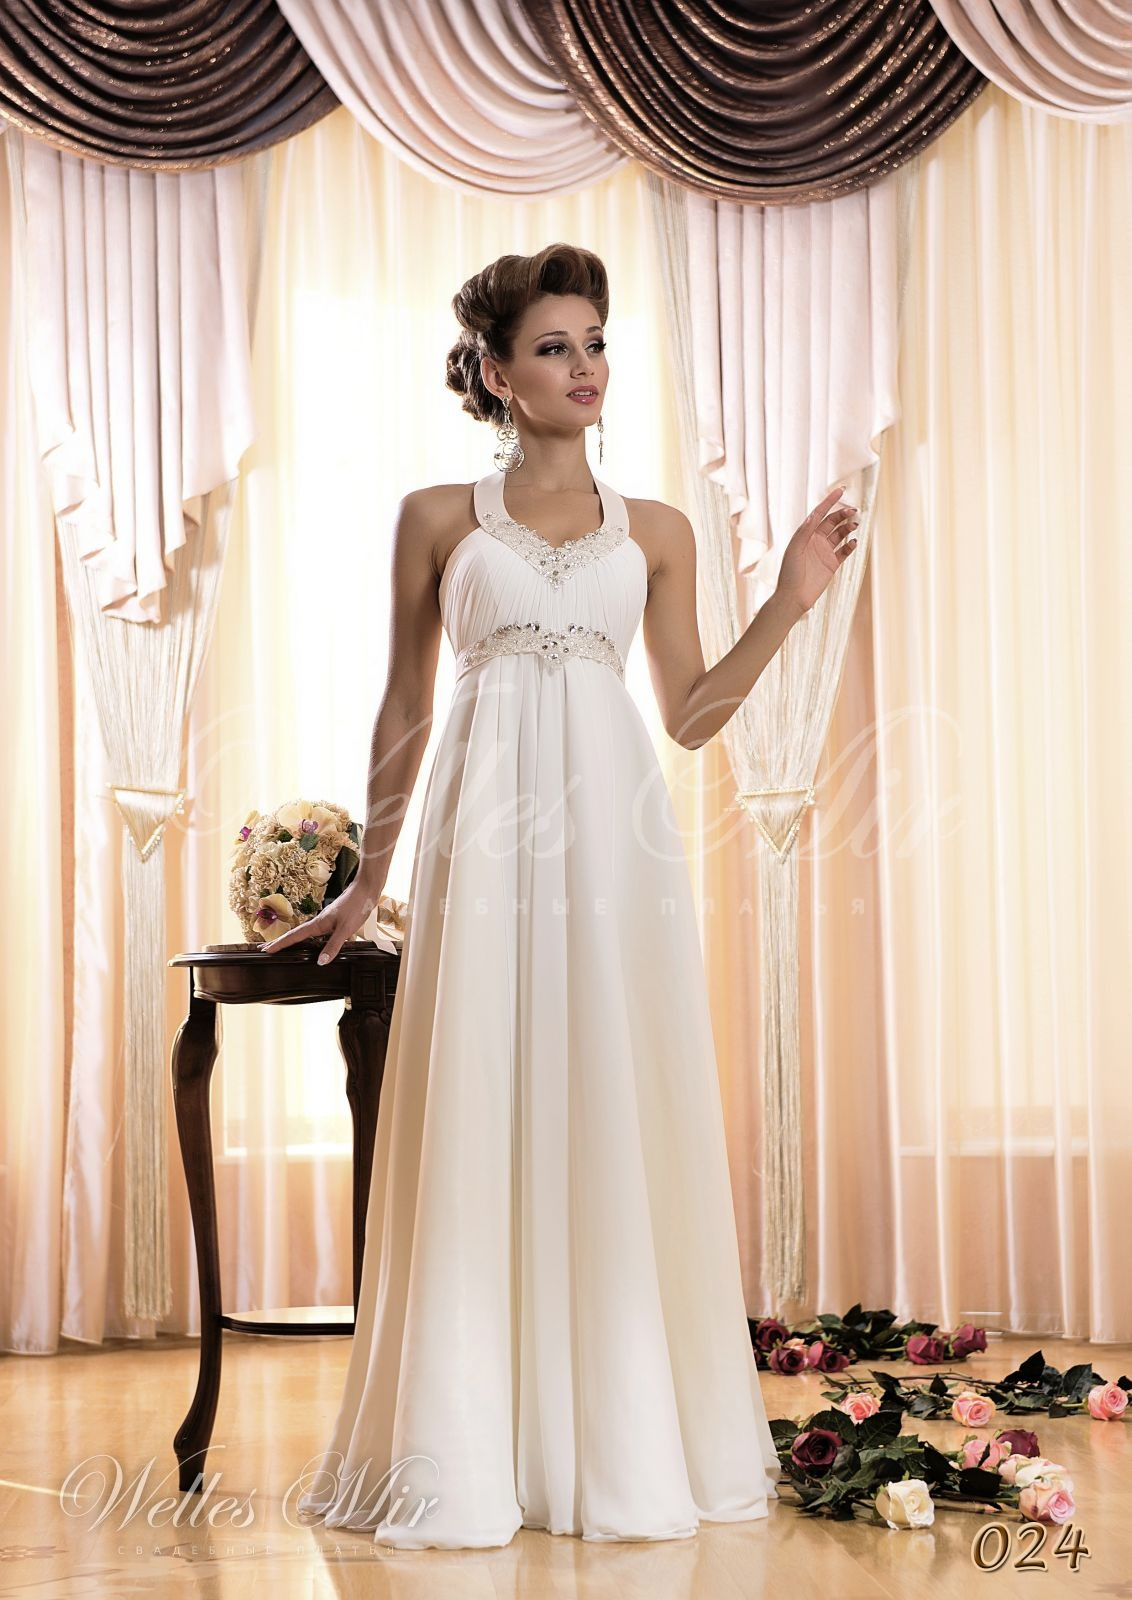 Wedding dresses 024